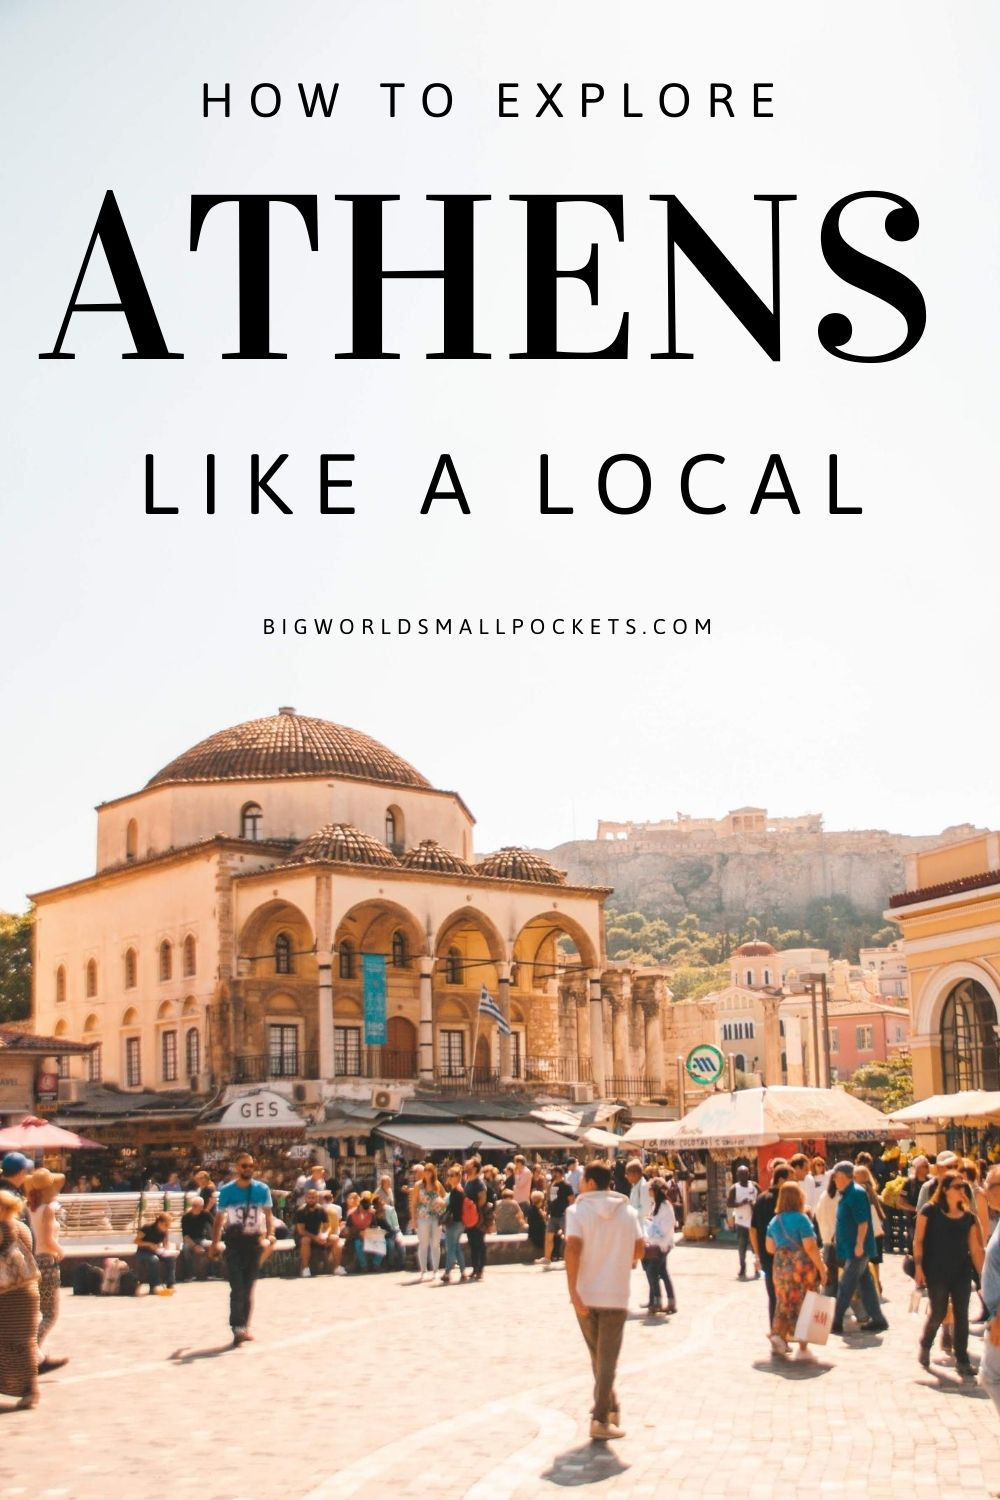 How to Explore Athens Like a Local